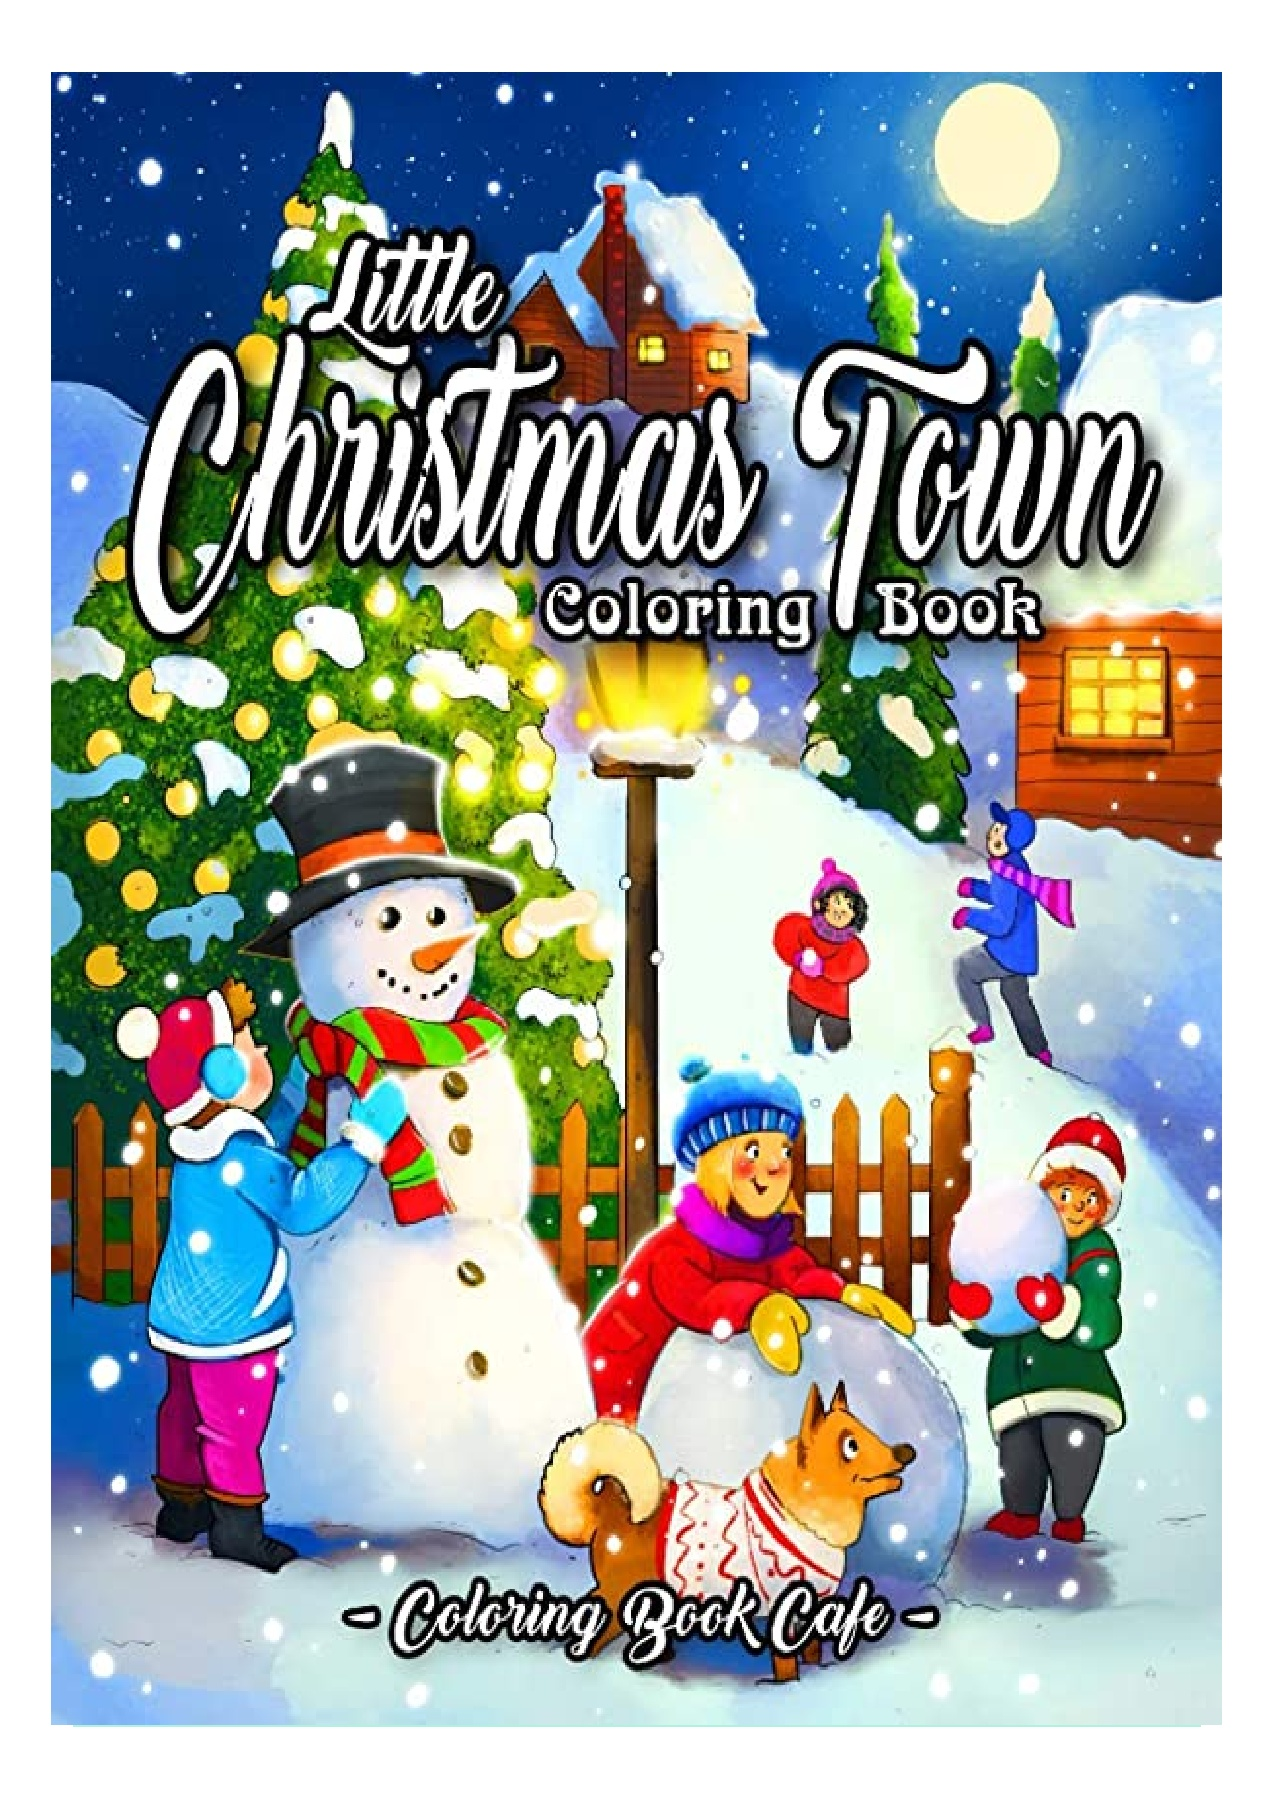 Pdf Free Download Little Christmas Town Coloring Book A Christmas Coloring Book Featuring Cute Fun And Easy Festive Holiday Illustrations For Android Flip Ebook Pages 1 3 Anyflip Anyflip